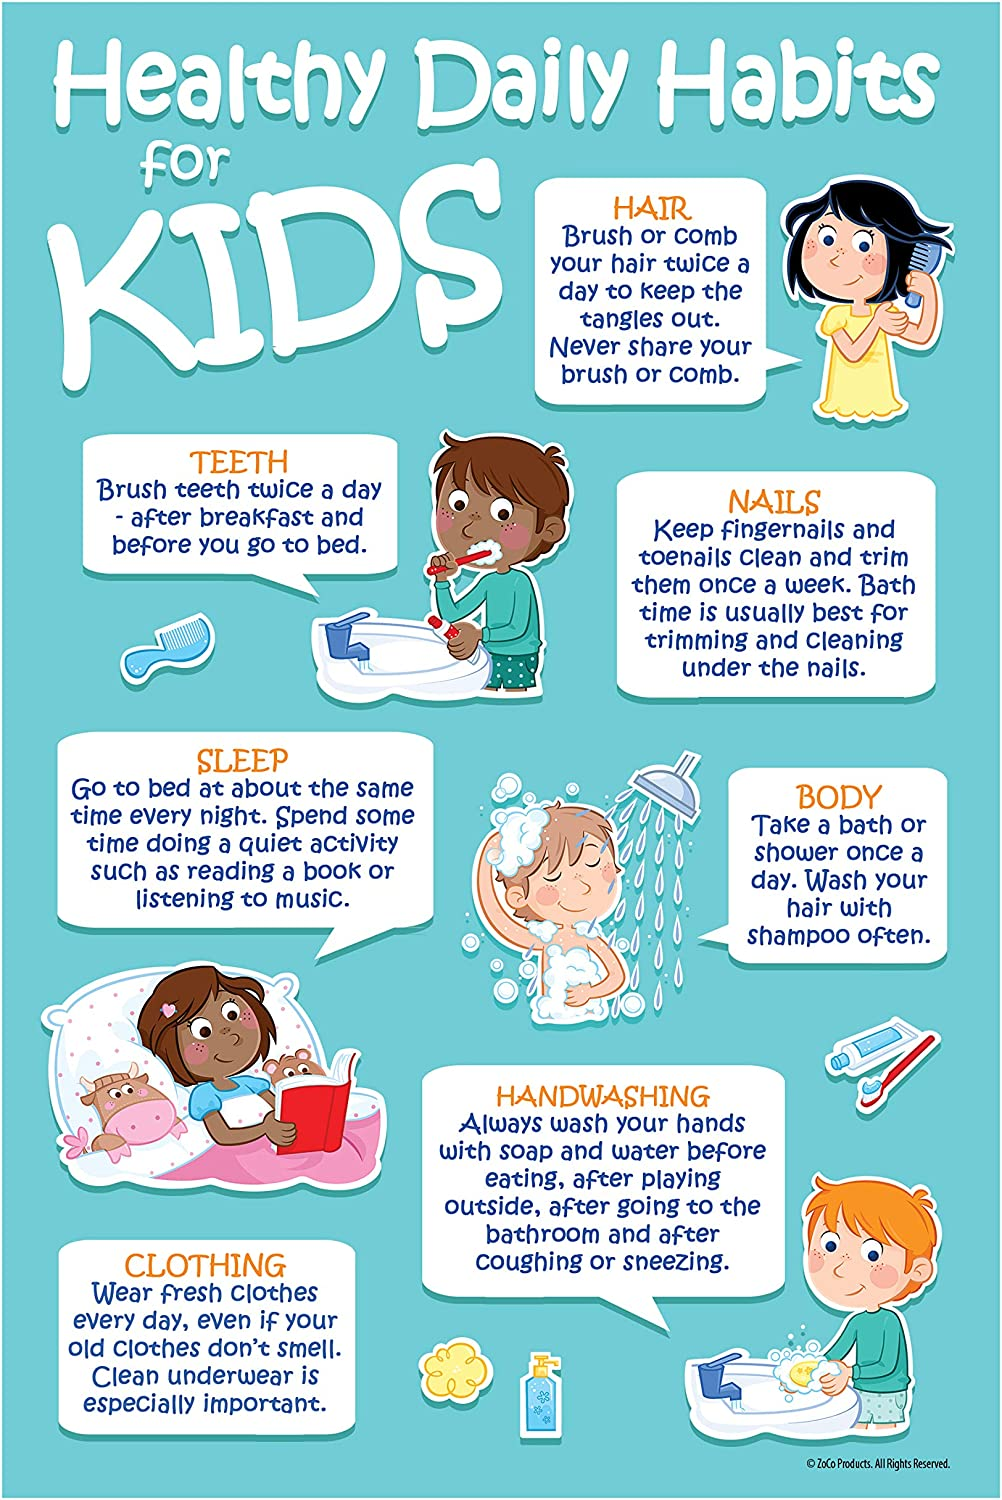 Kids 7 Healthy Daily Habits Poster - Hygiene Posters for Kids - Kids Health Posters for School - Health Posters for School Nurse Office - 12 x 18 in - Laminated